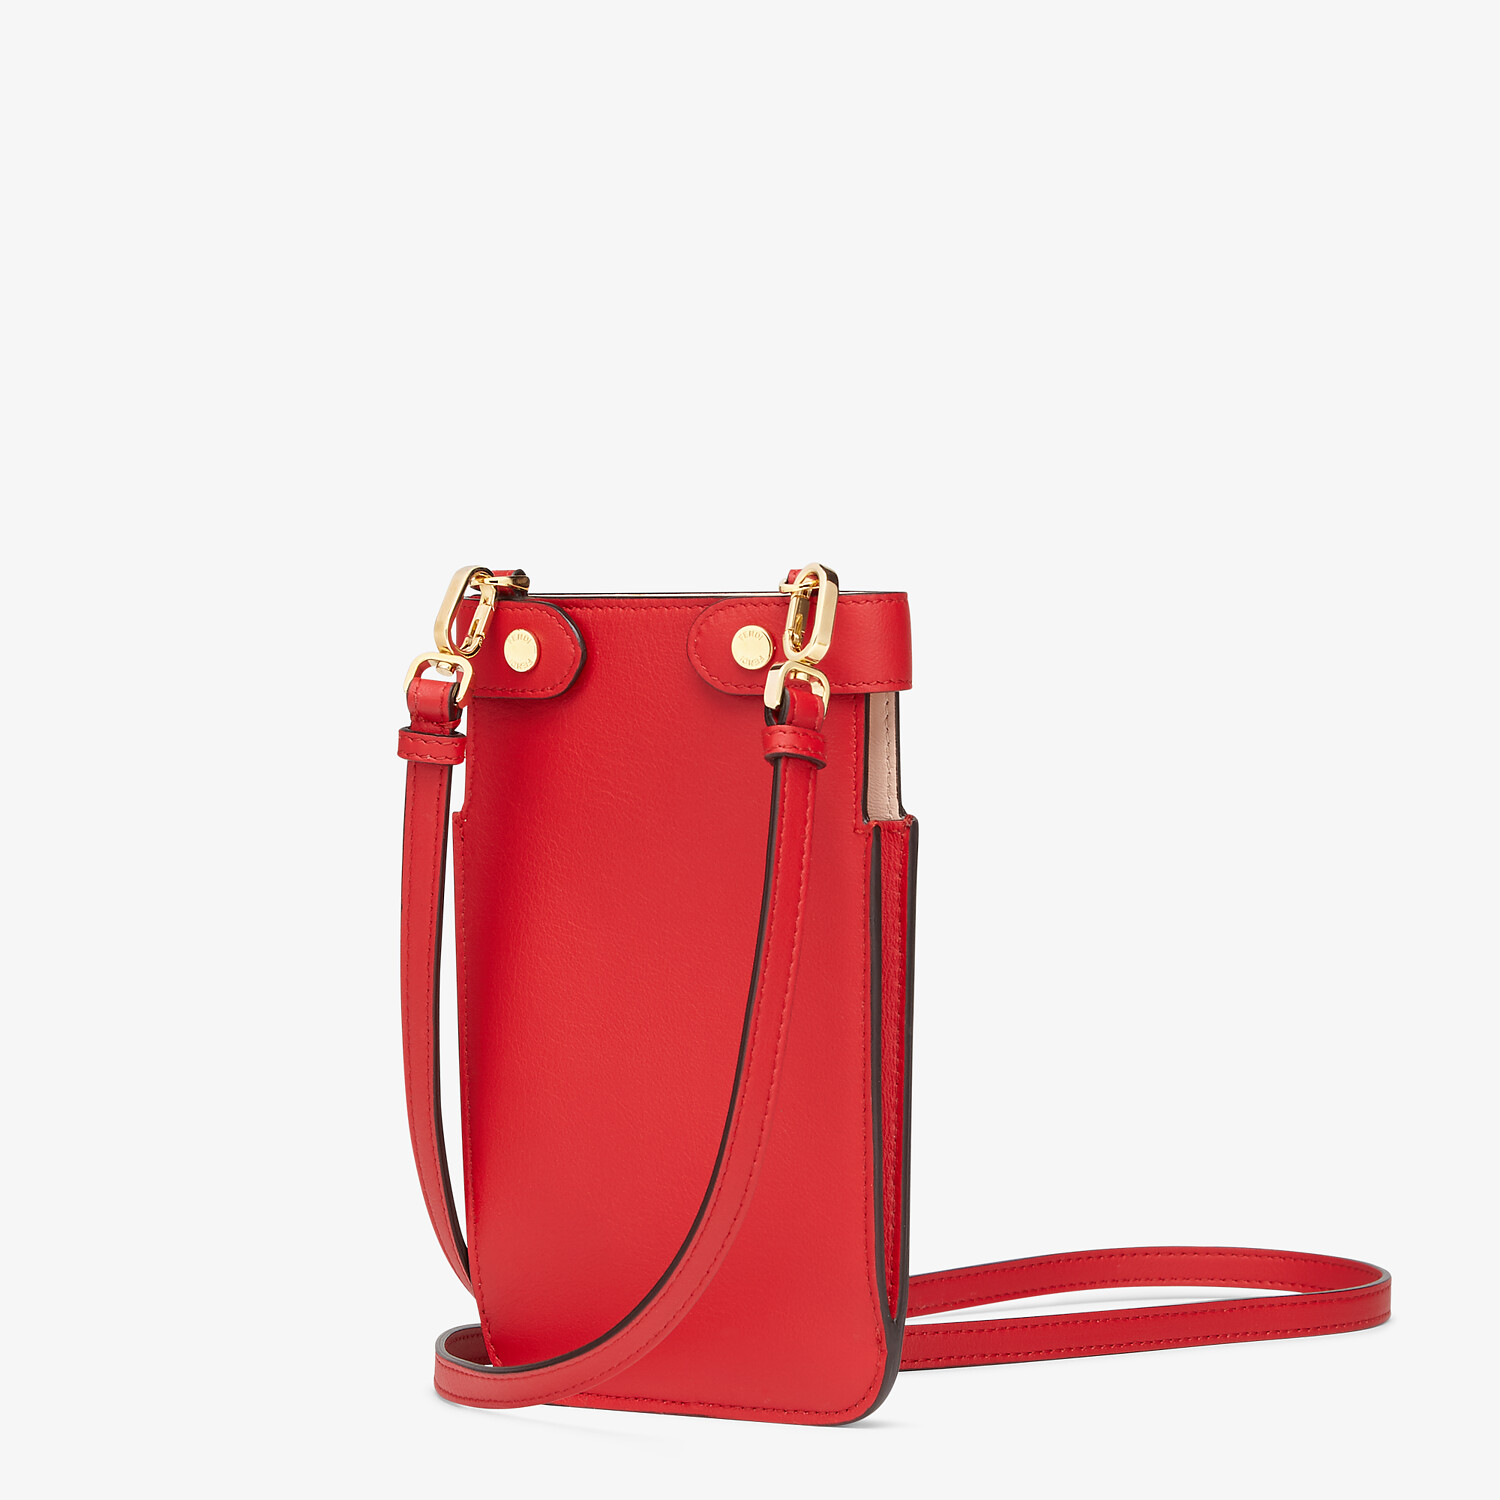 FENDI PEEK-A-PHONE - Pouch from the Lunar New Year Limited Capsule Collection - view 2 detail